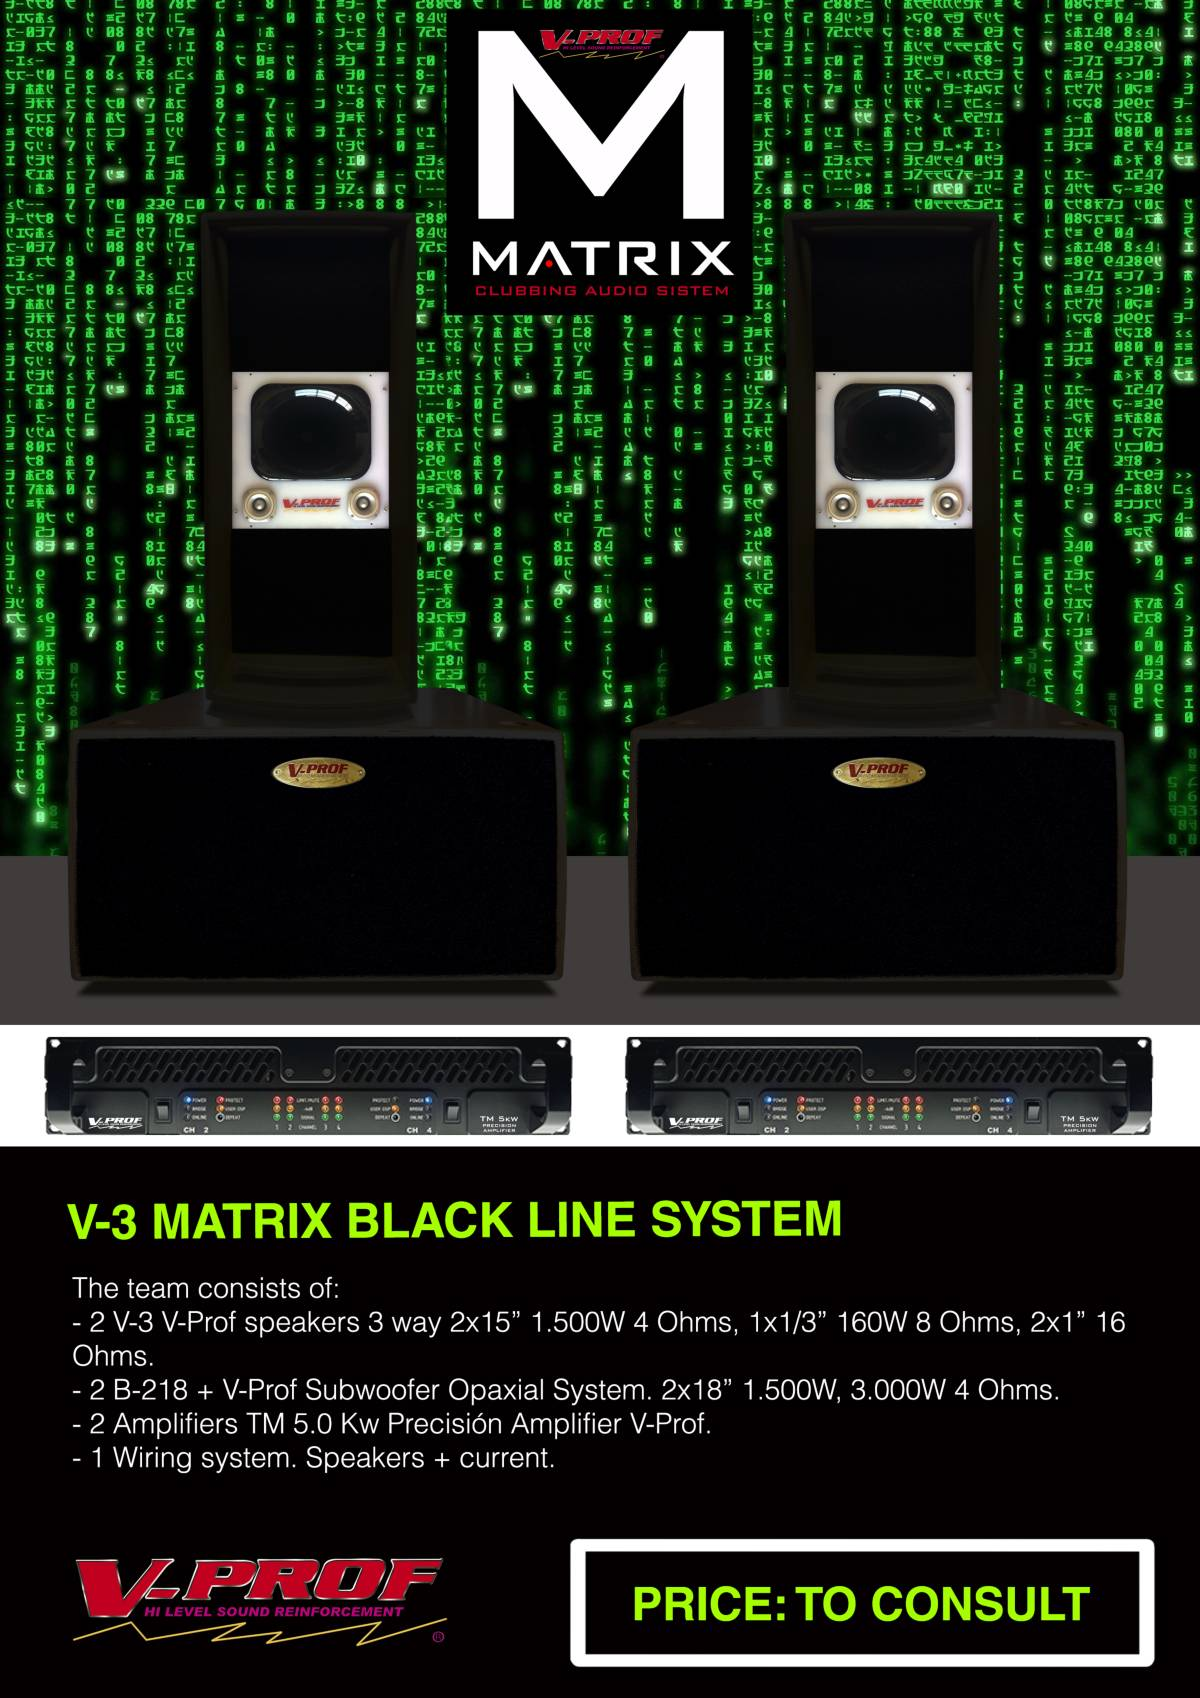 NEW PANEL EQUIPO MATRIX FINAL SIN PRECIO ENGLISH